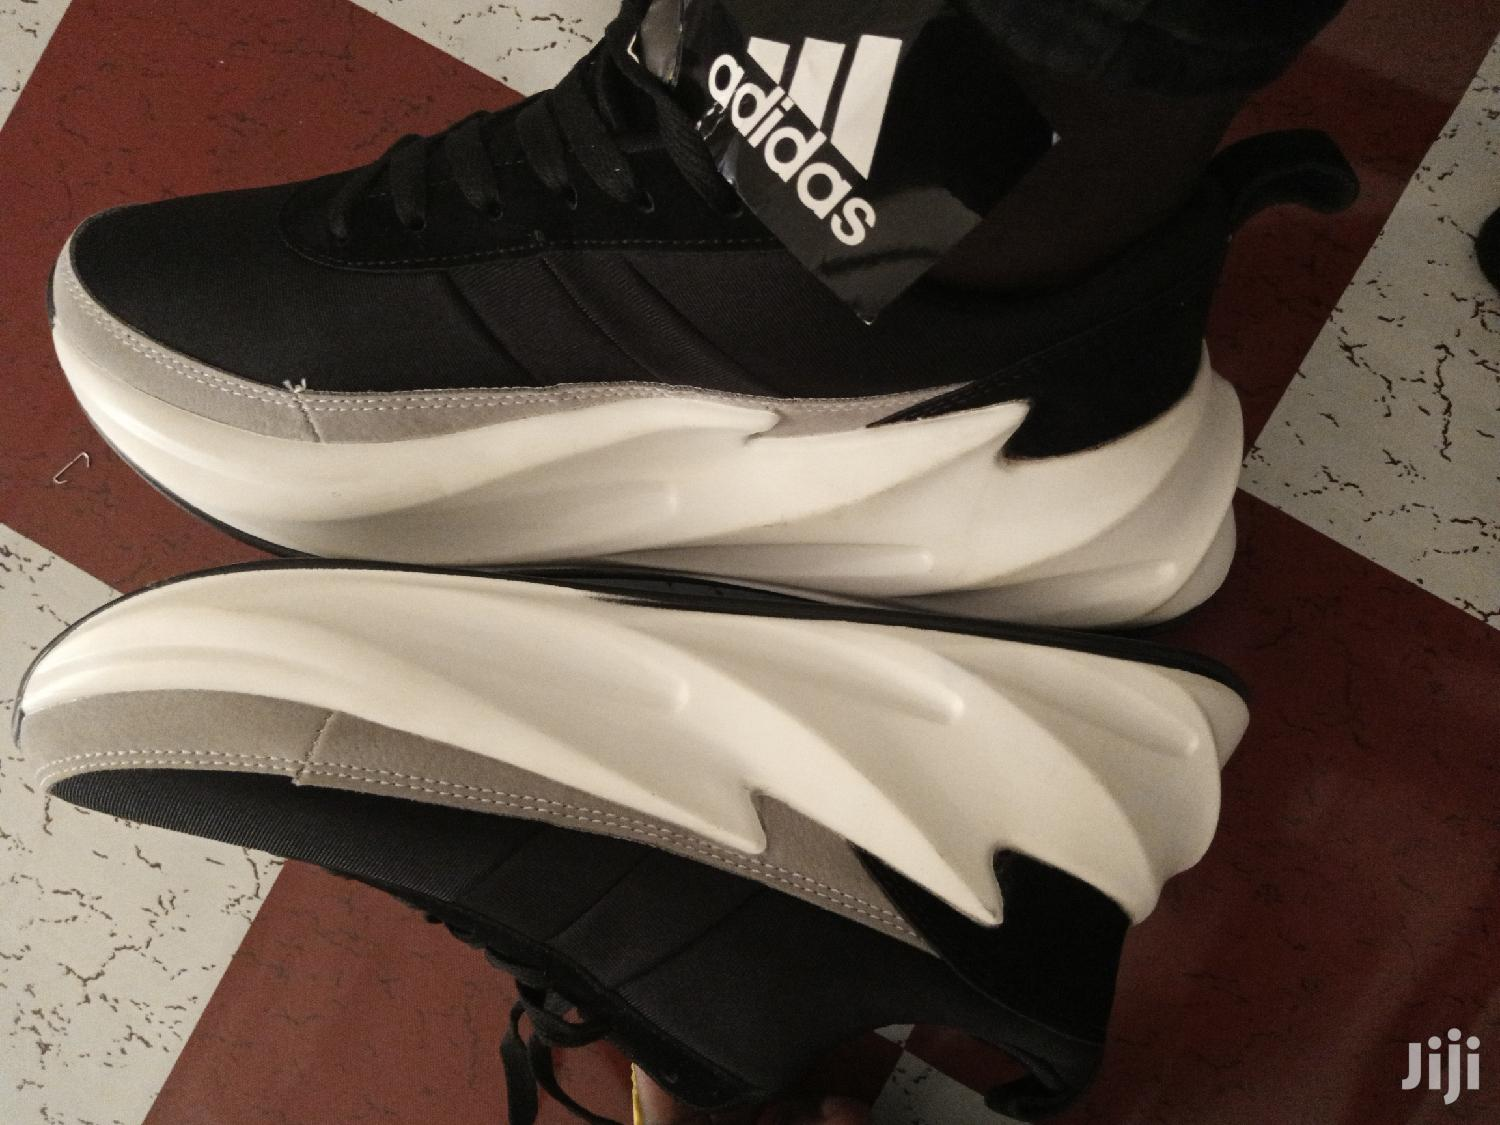 Men's Wave Runner Casual Sneakers   Shoes for sale in Kampala, Central Region, Uganda